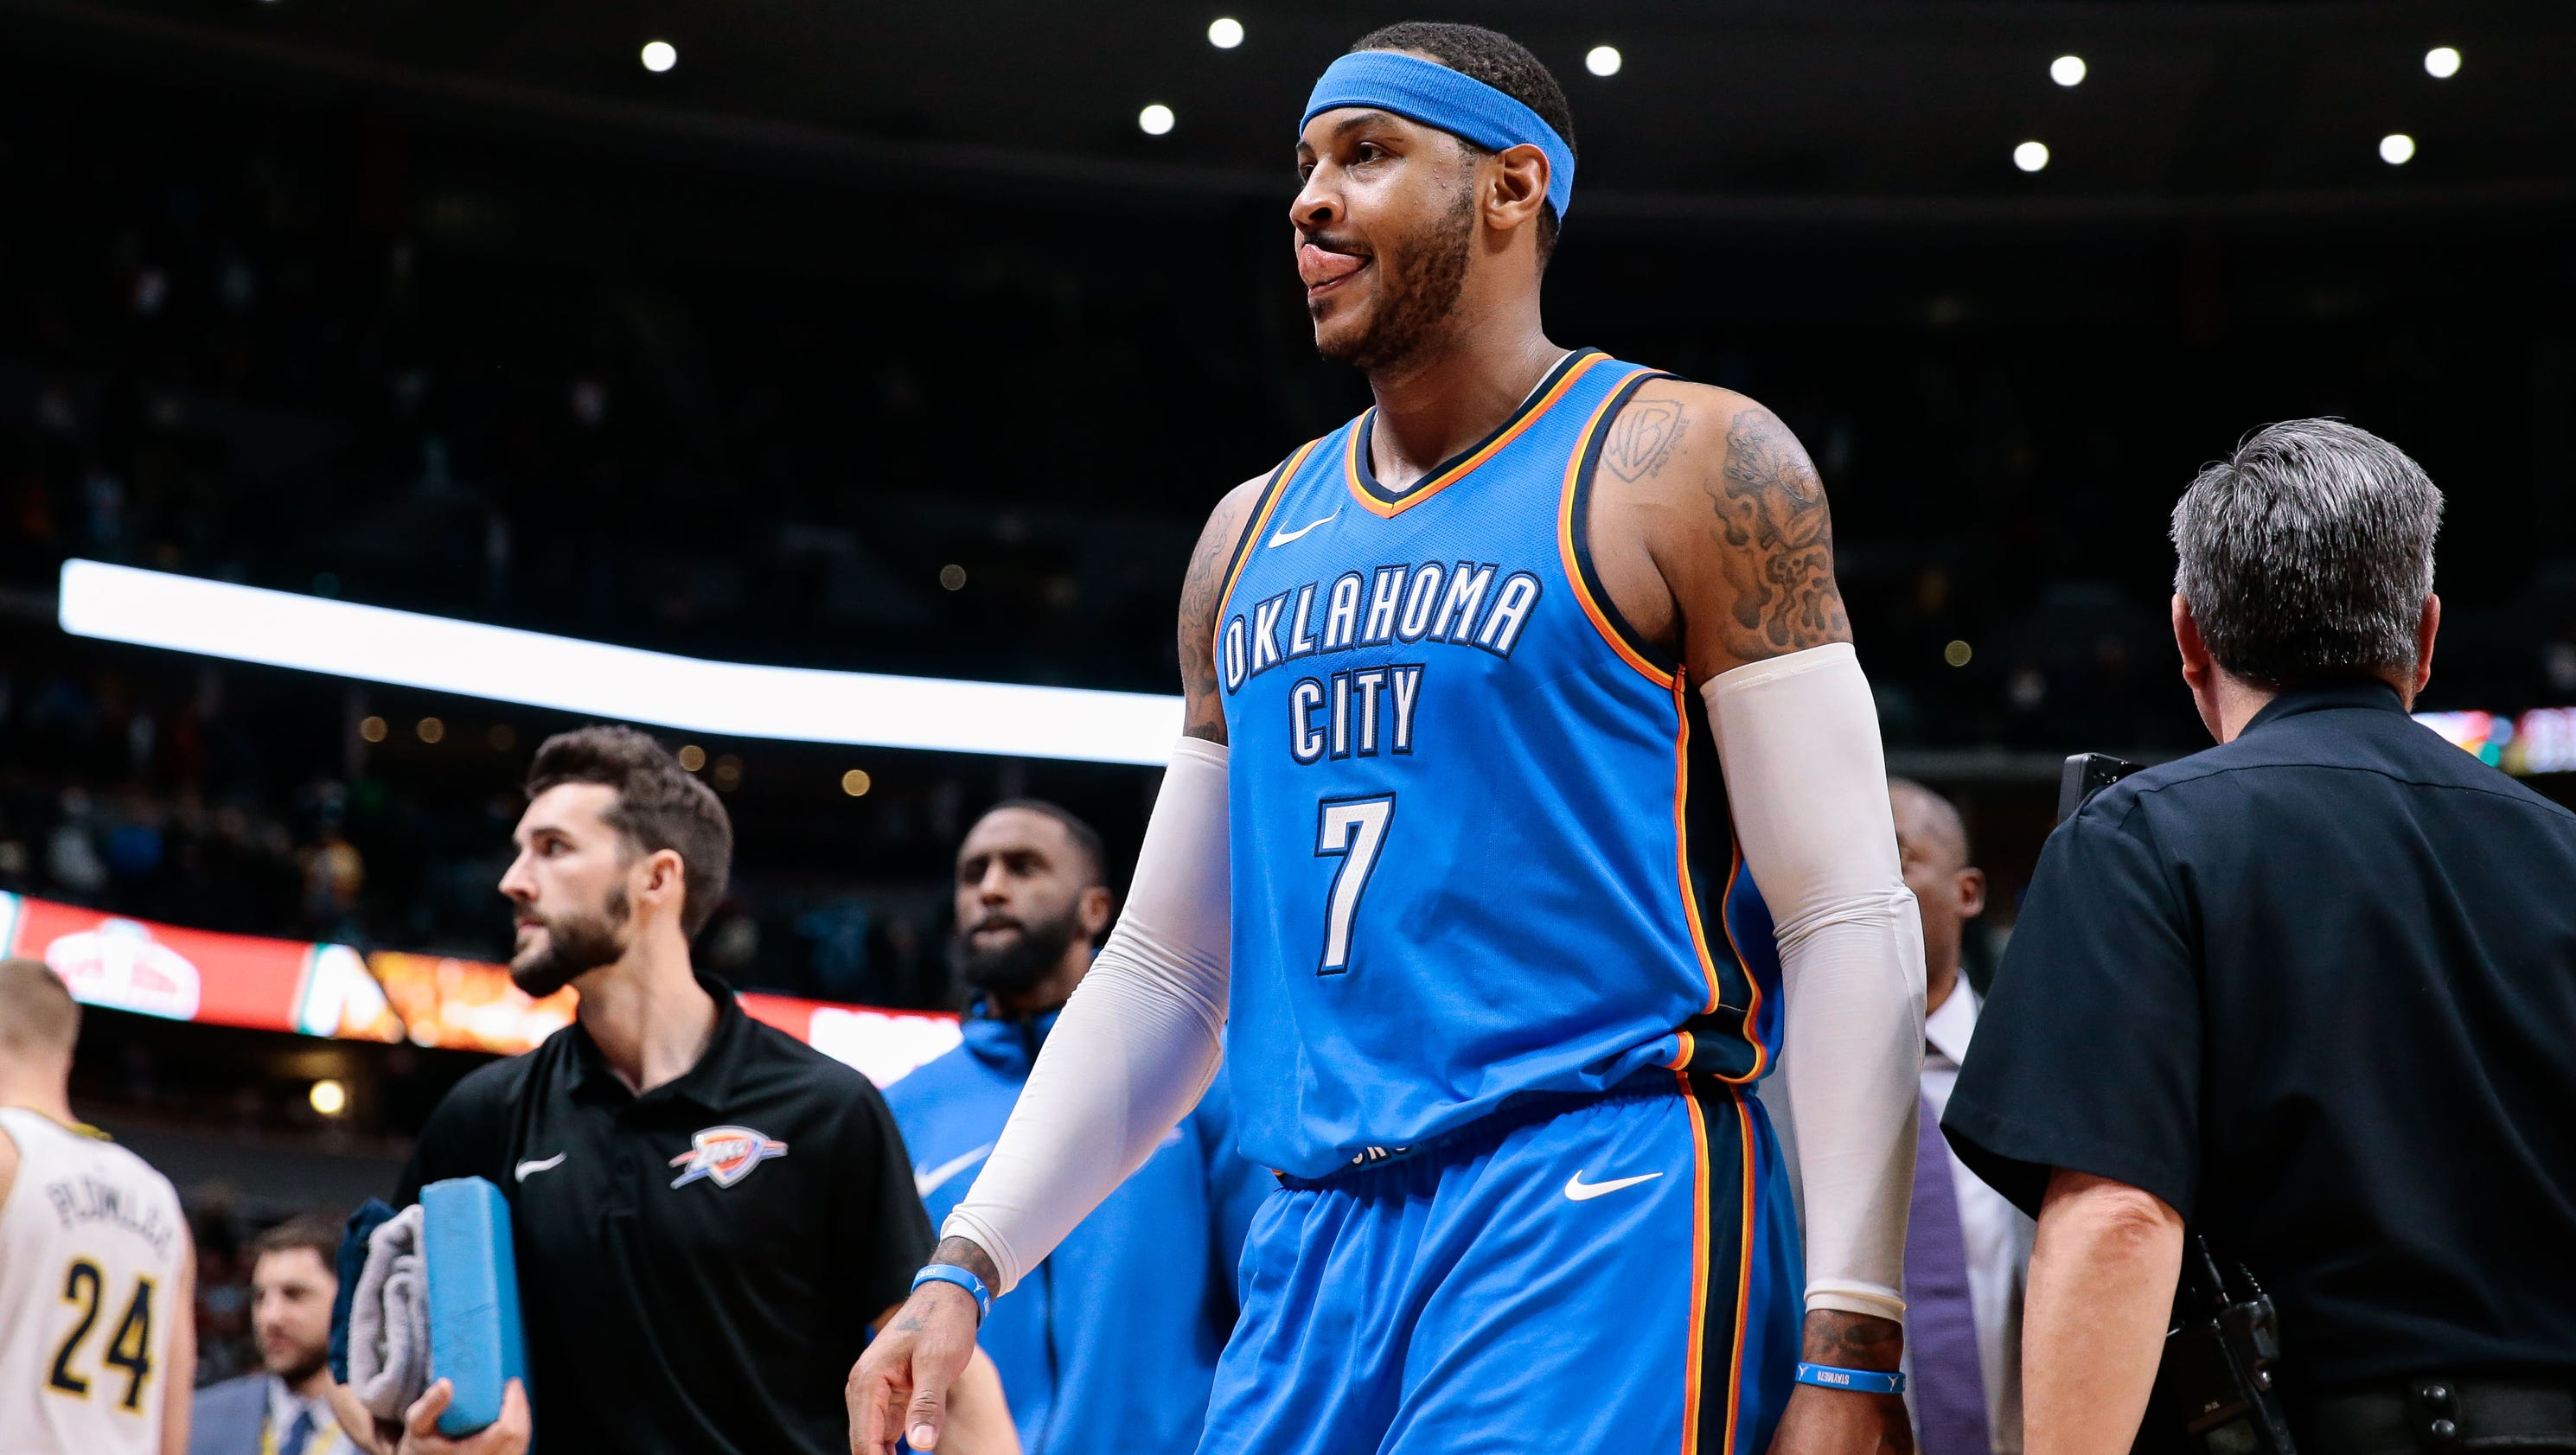 636459187693522781-usp-nba--oklahoma-city-thunder-at-denver-nuggets